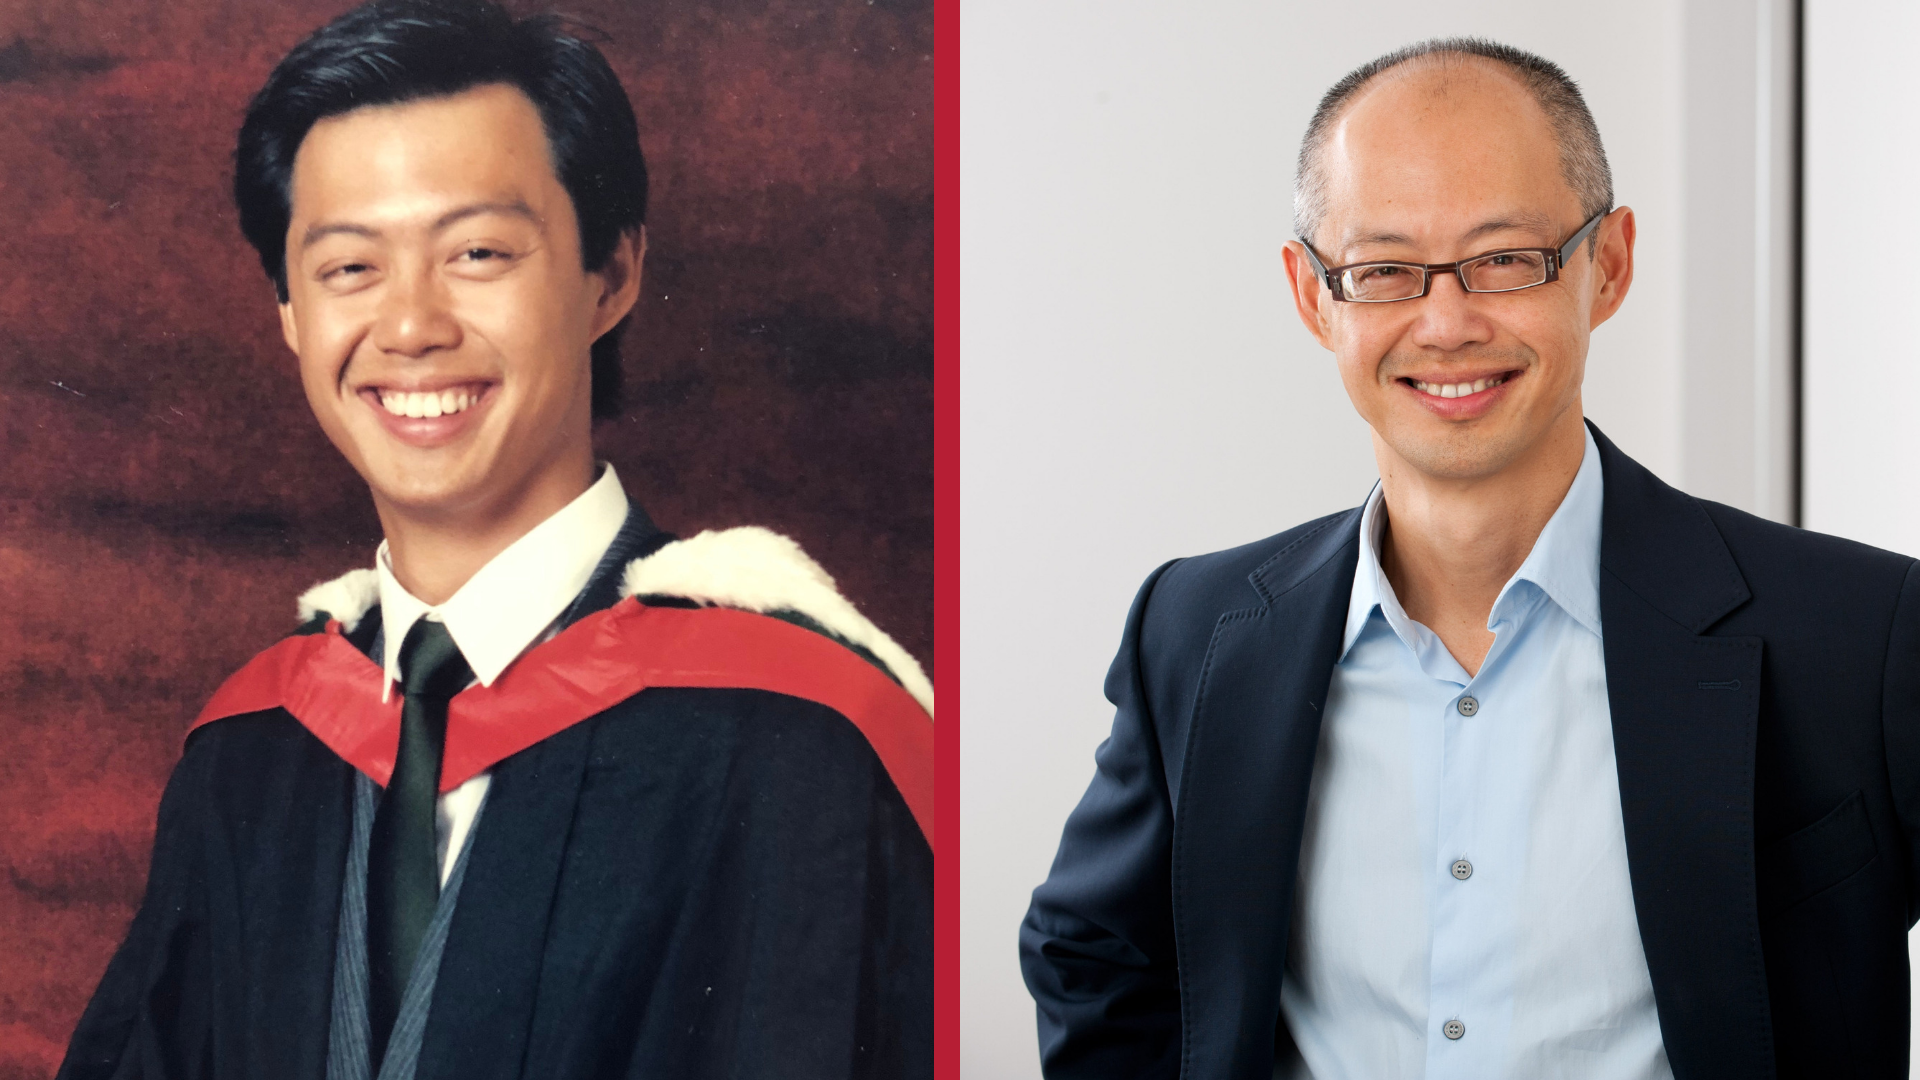 Then and now - BSH President Cheng-Hock Toh